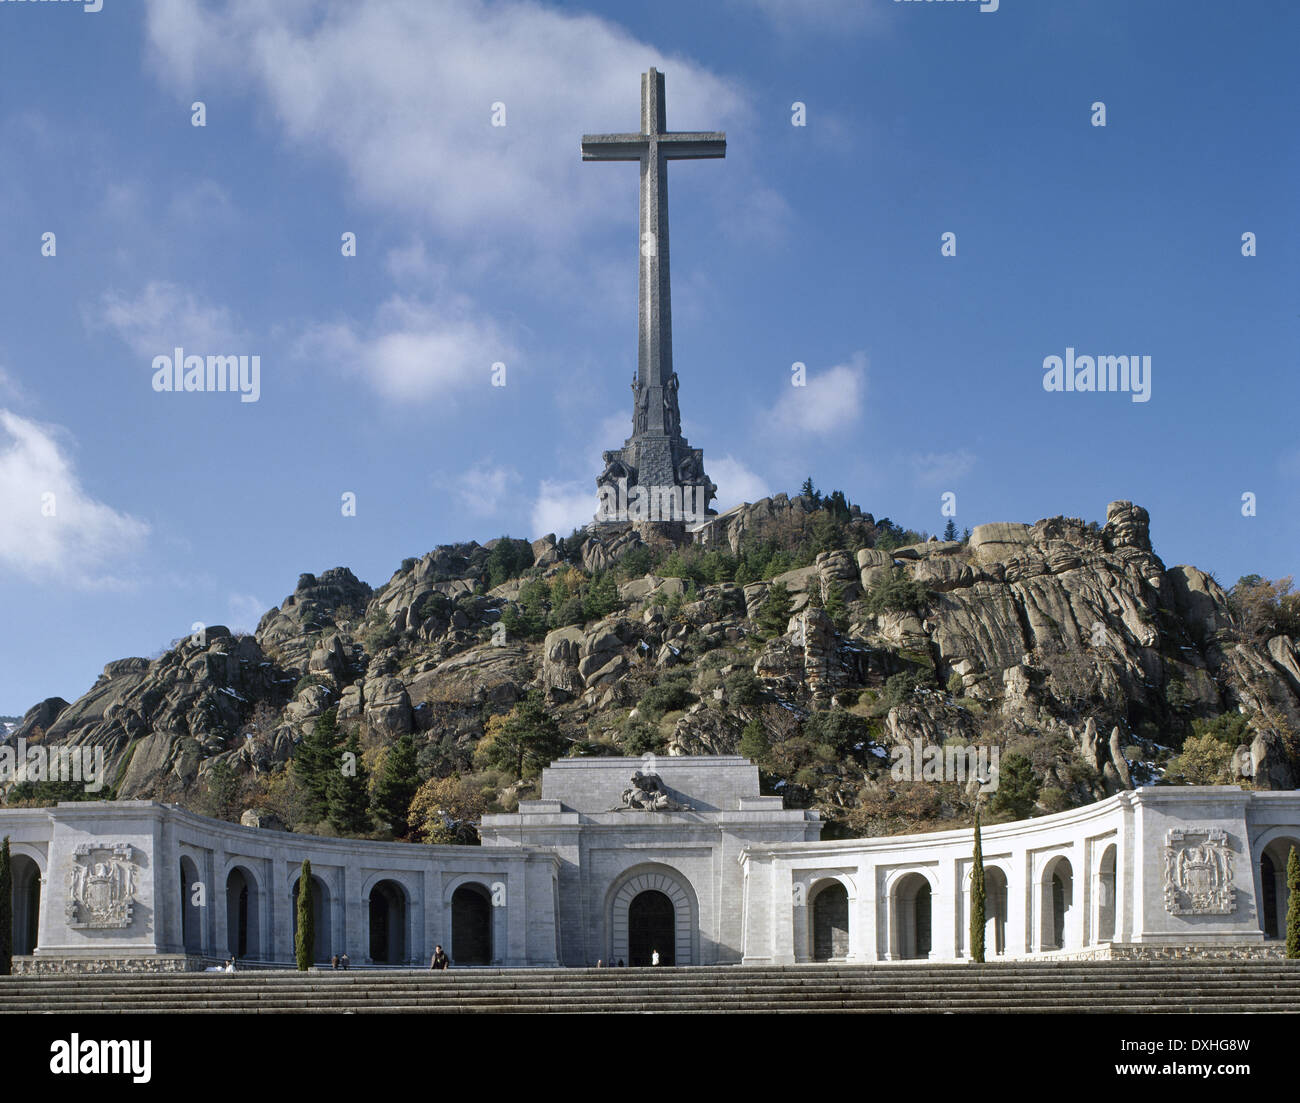 Spain. Madrid. Valley of the Fallen (Valle de los Caidos) By Pedro Muguruza (1893-1952) and Diego Mendez (1906-1987). Stock Photo